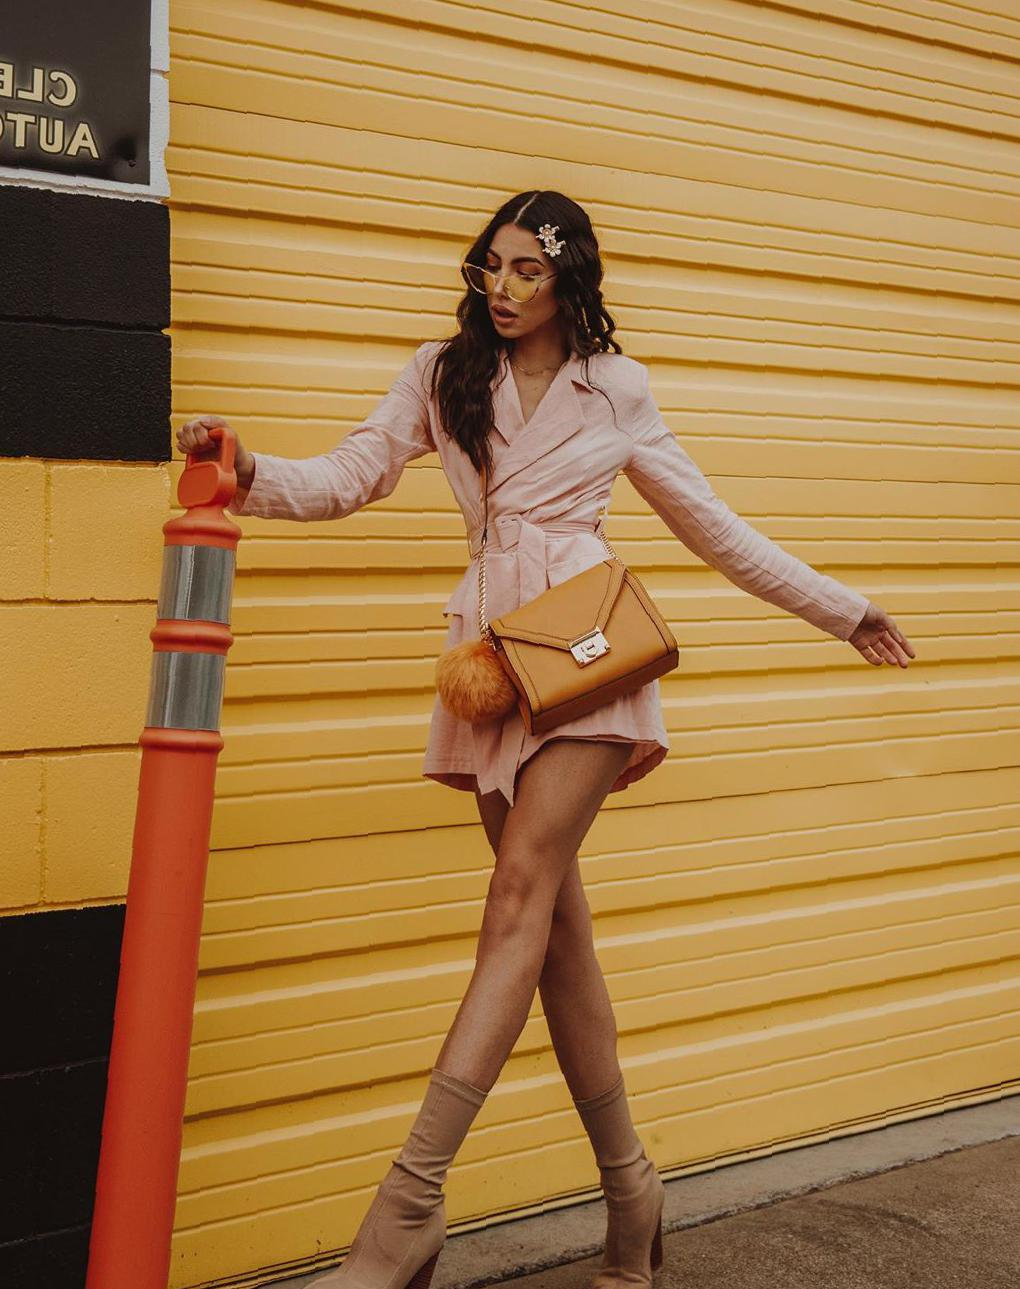 40 Awesome High-Heeled Shoes Make Your Summer Outfit Splendid high-heeled shoes,high-heeled shoes for summer,stilettos high heeled shoes,summer outfits,ankle straps high heeled shoes,strappy stilettos,chunky stilettos